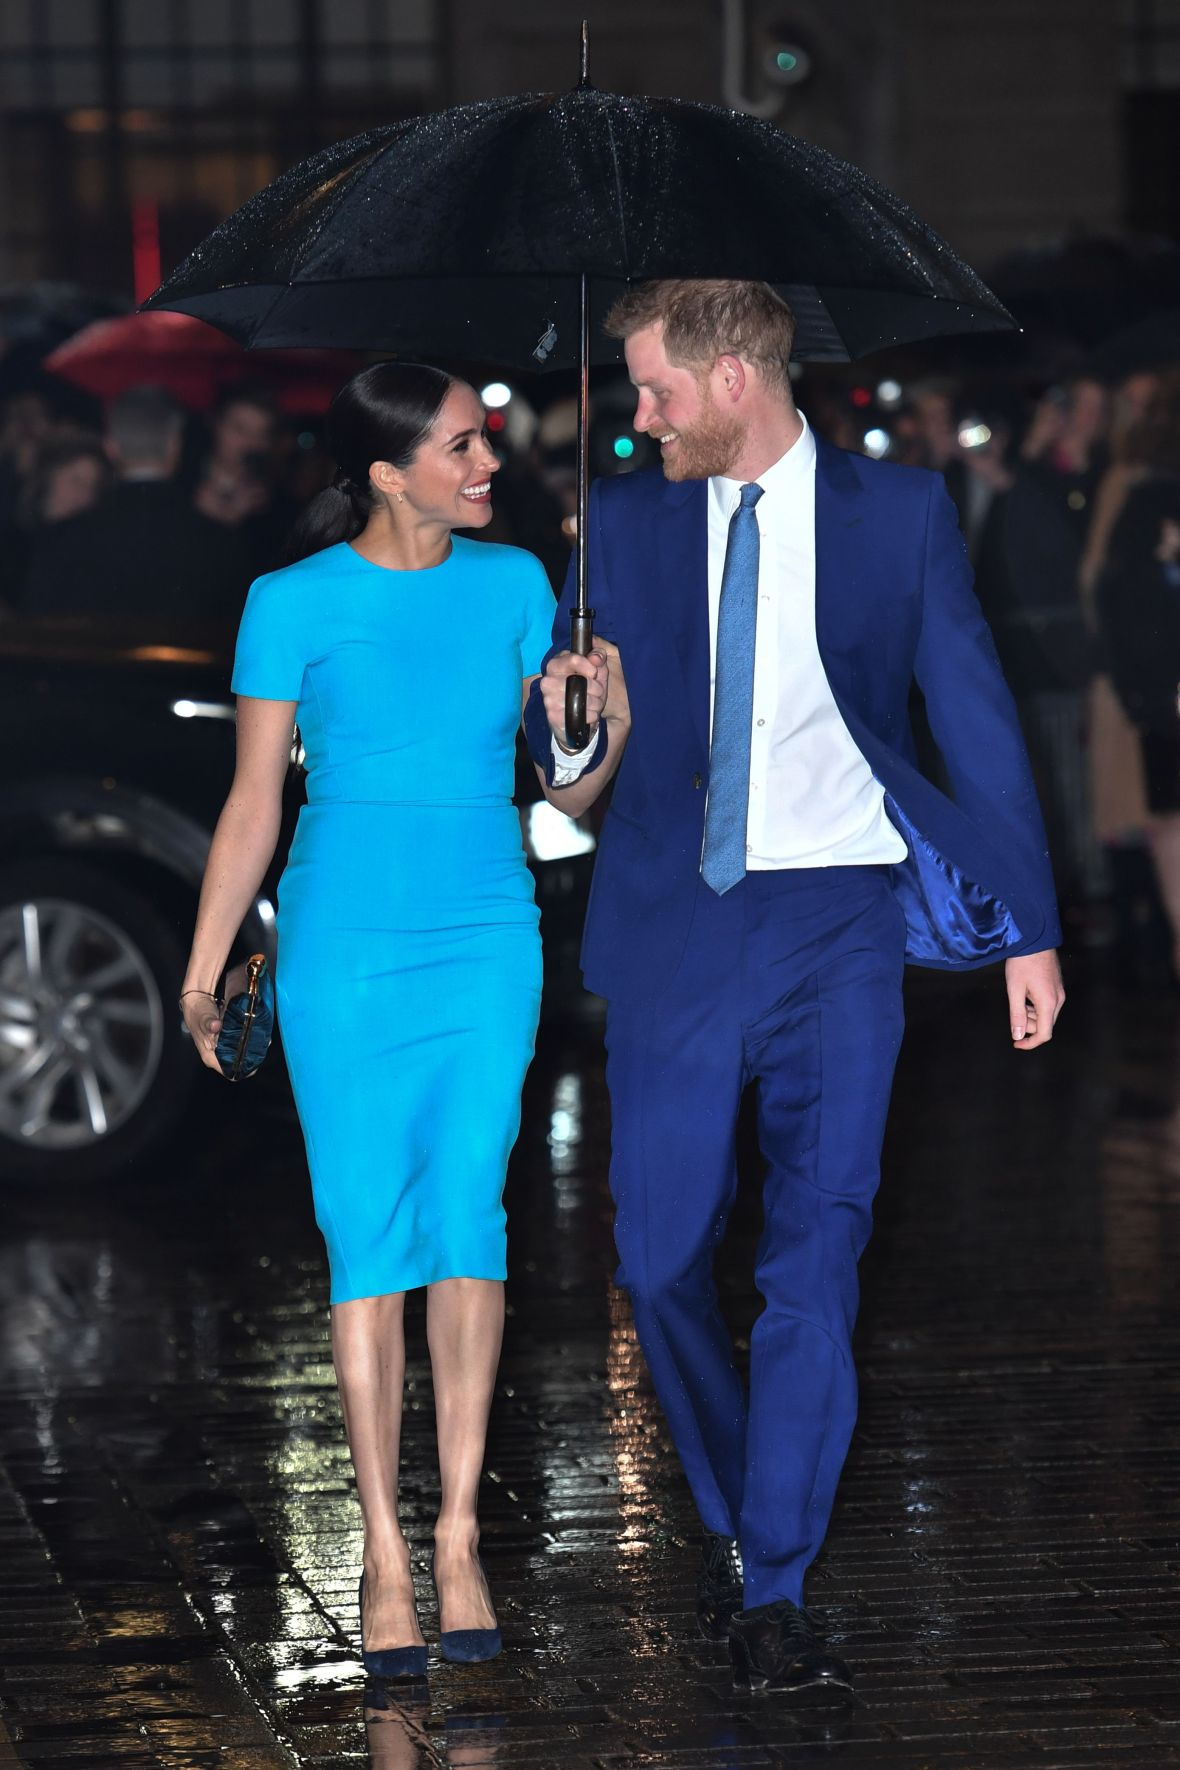 Meghan and Harry in the U.K.